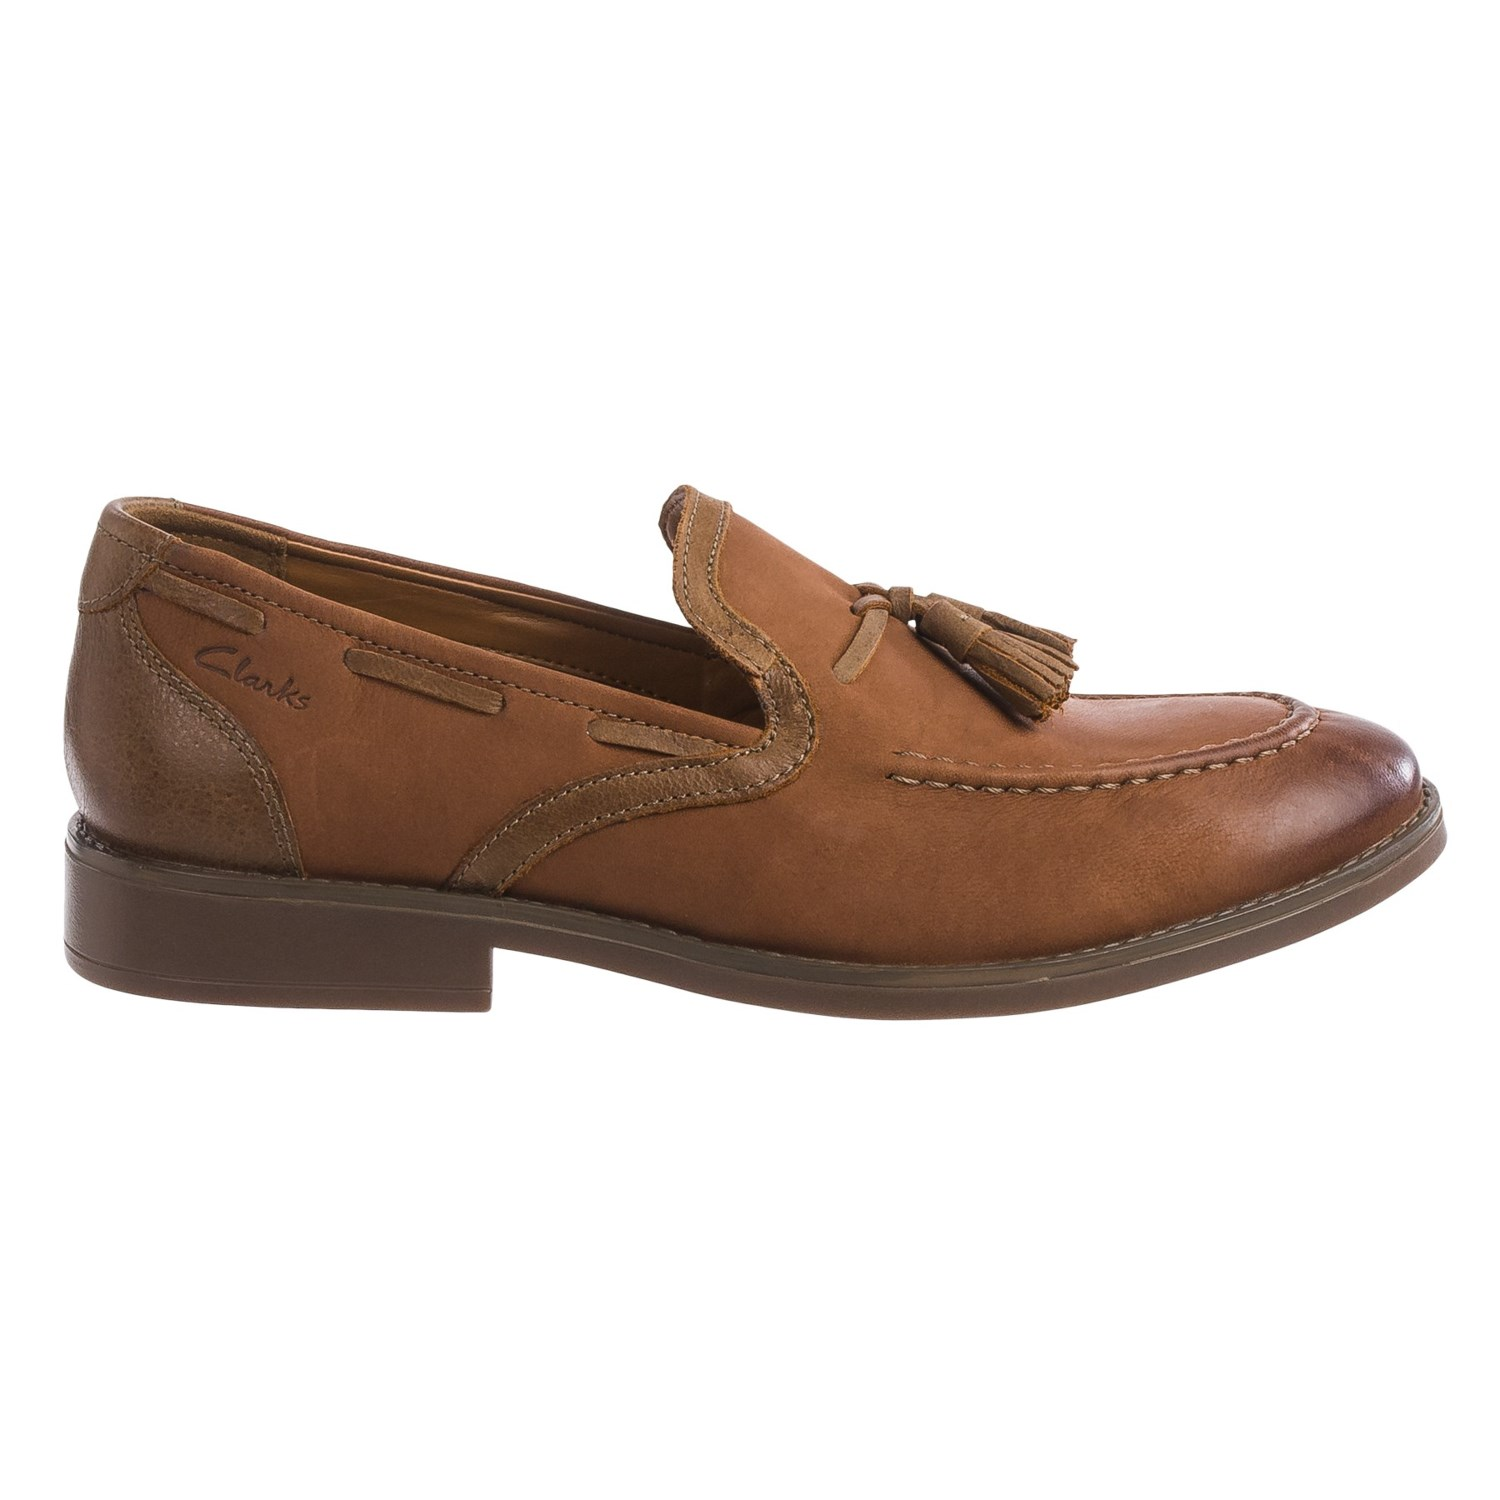 Clarks shoes usa coupons